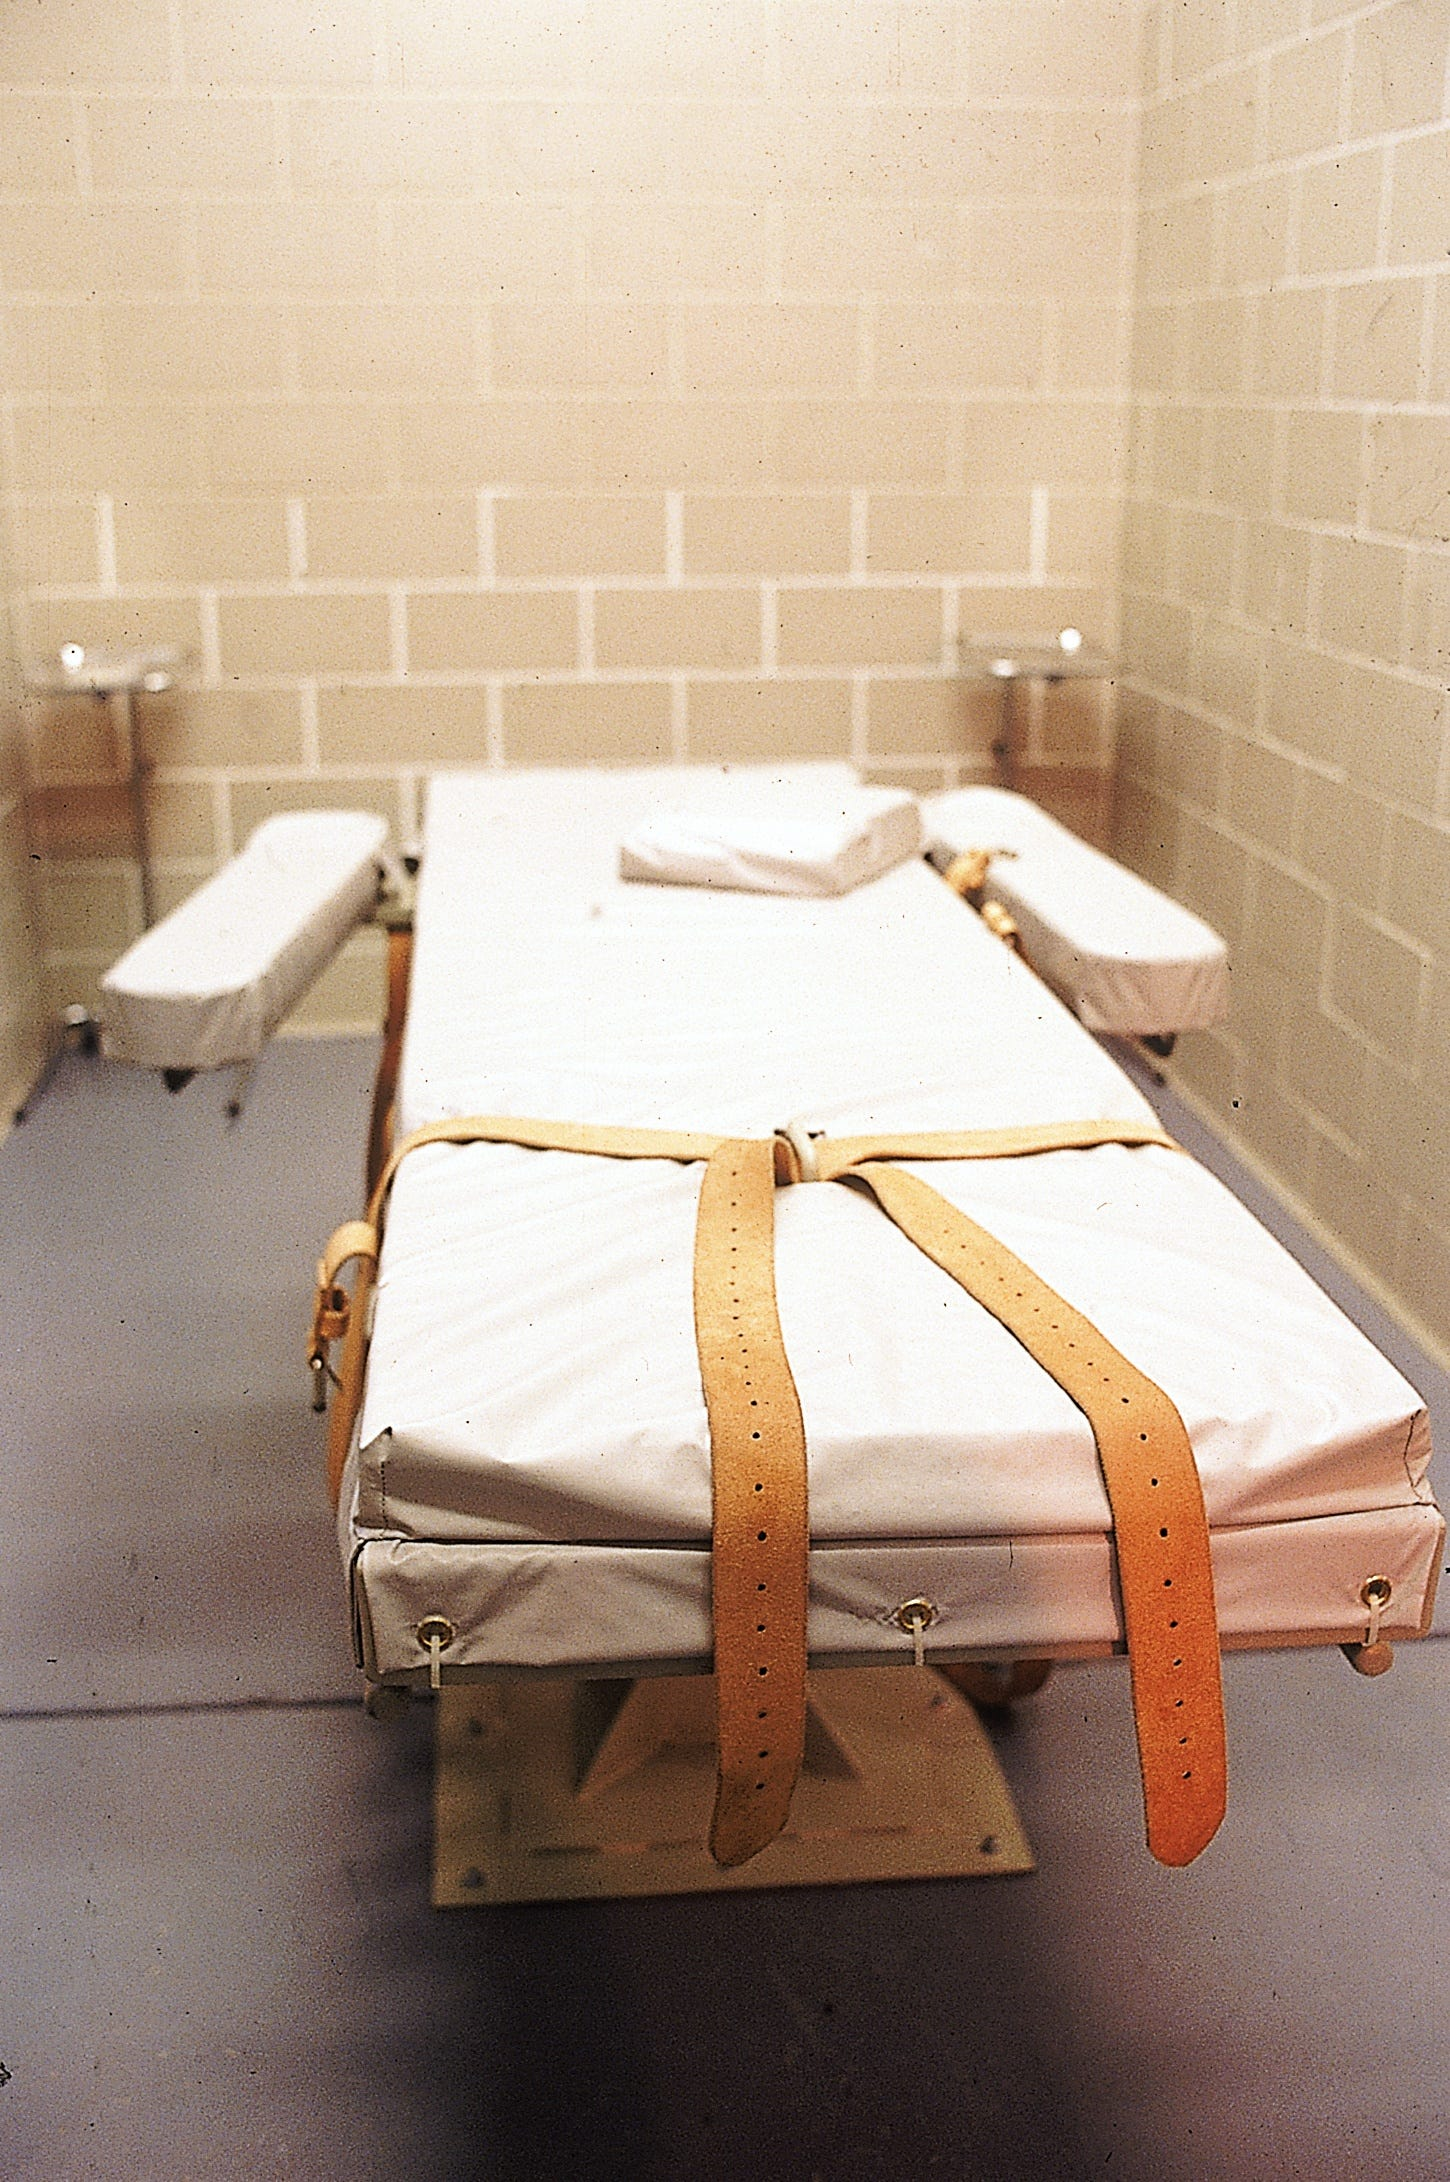 Arizona publishes new lethal injection rules for prisoner executions